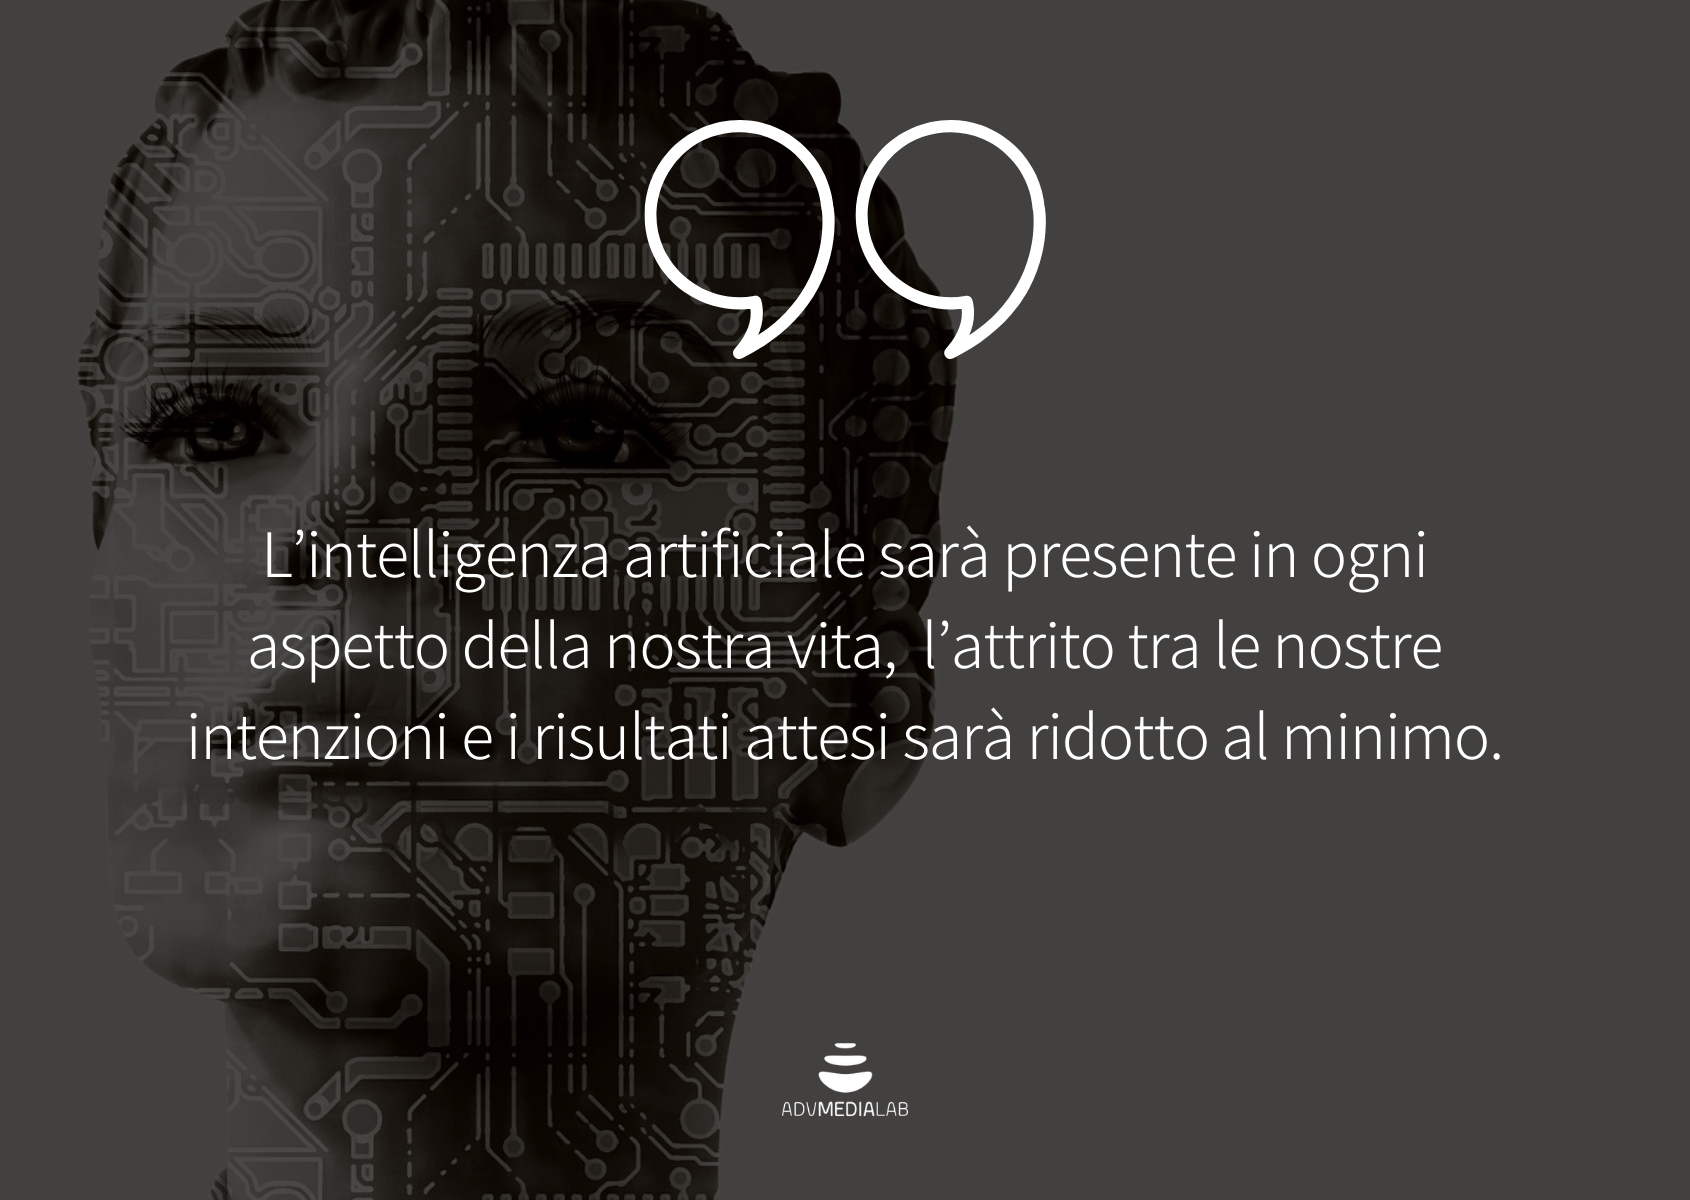 Marketing-ai-quote4